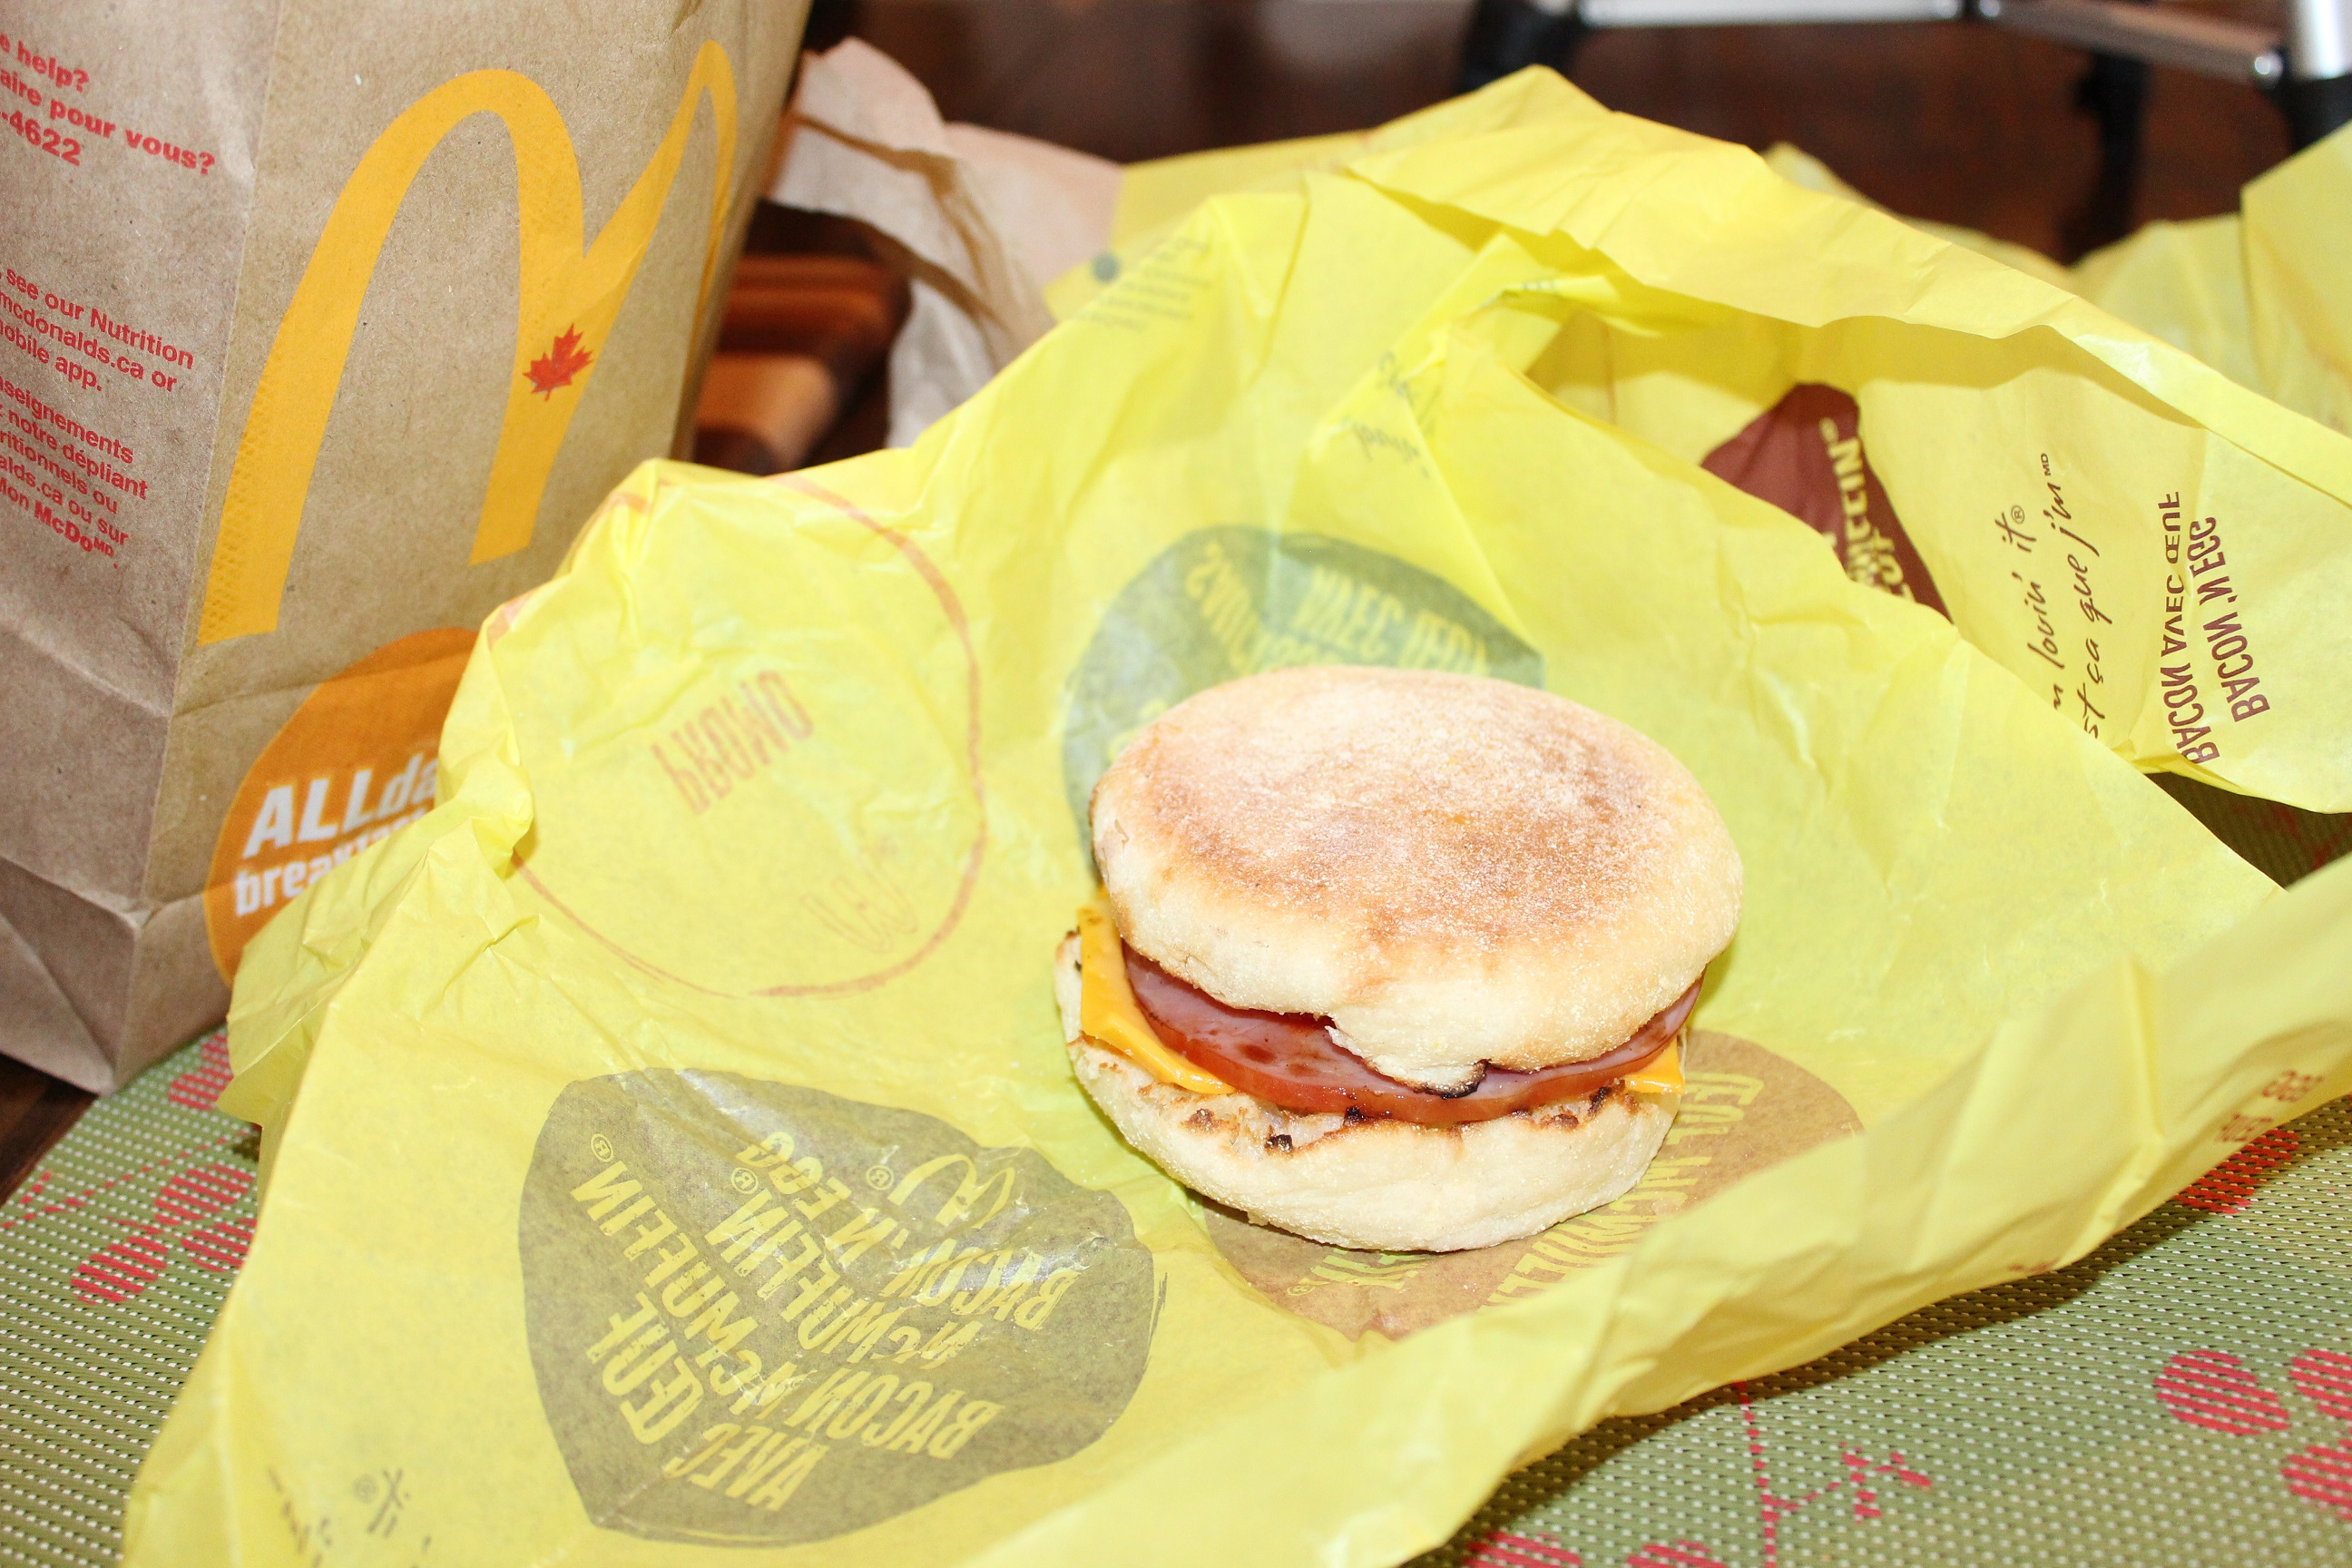 I Ate McDonald's All-Day Breakfast for Every Single Meal For a Week